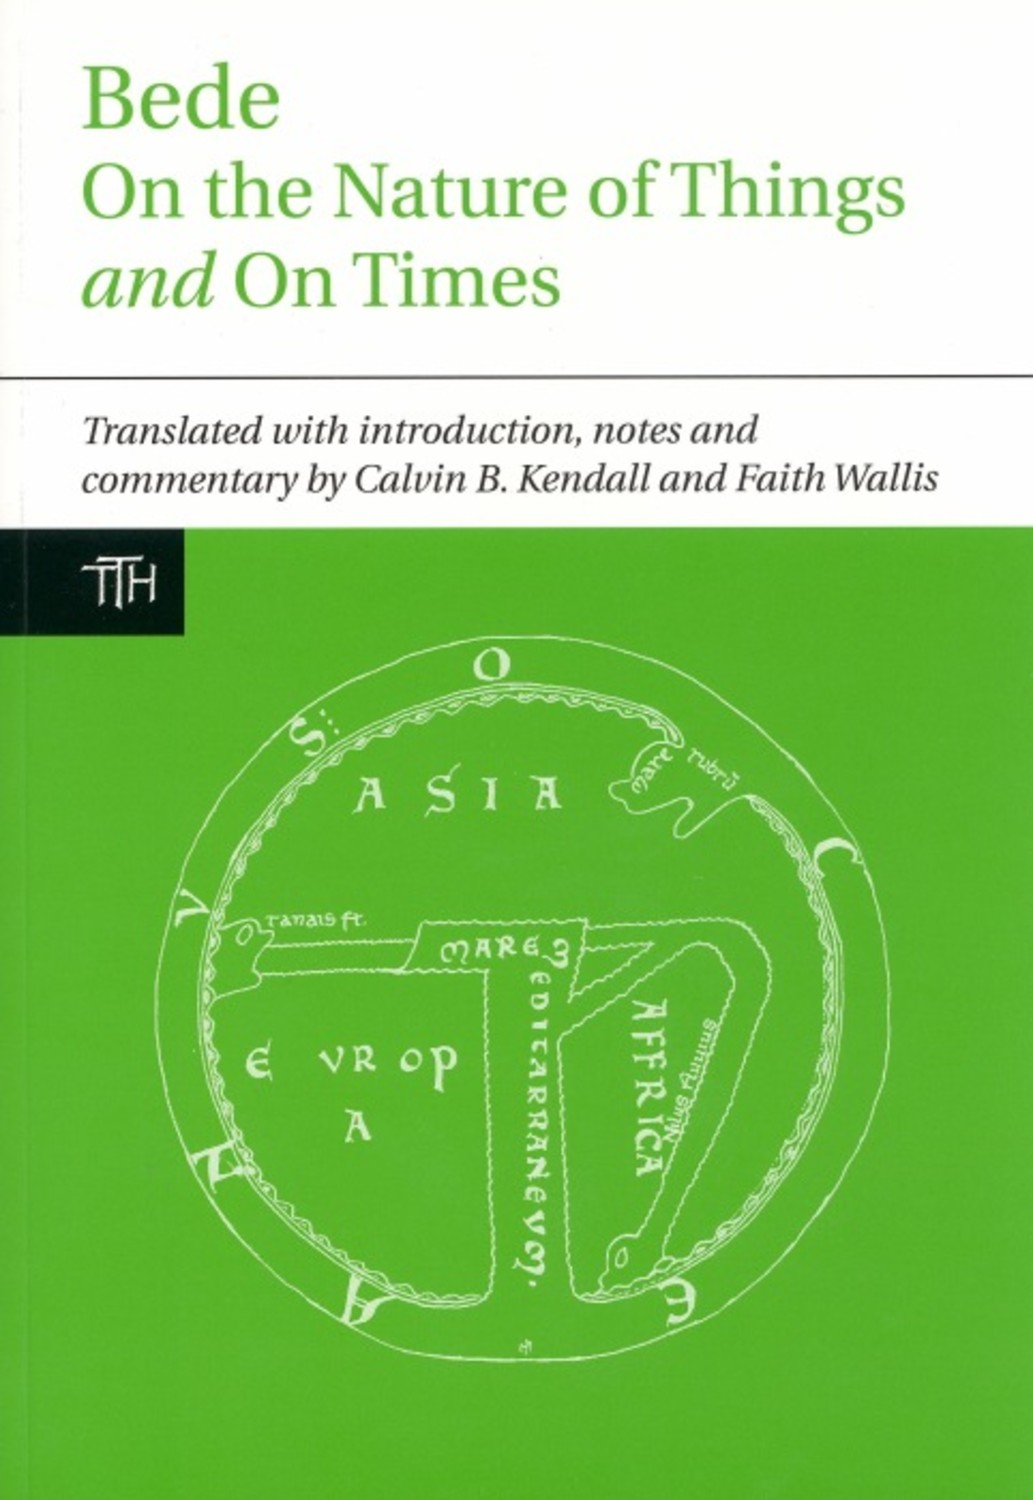 Bede: On the Nature of Things and On Times